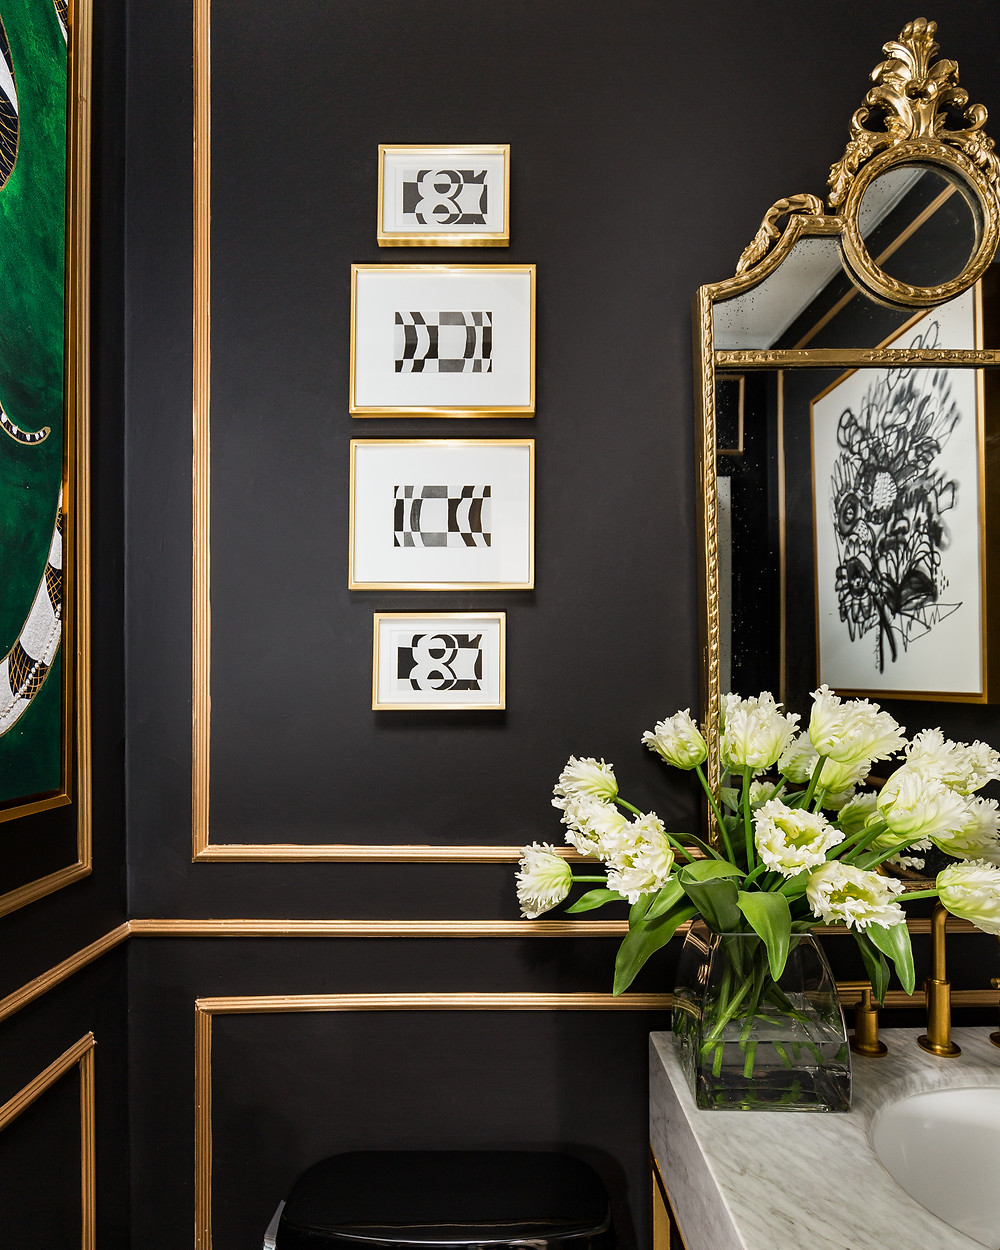 Powder room with black walls and gold accents